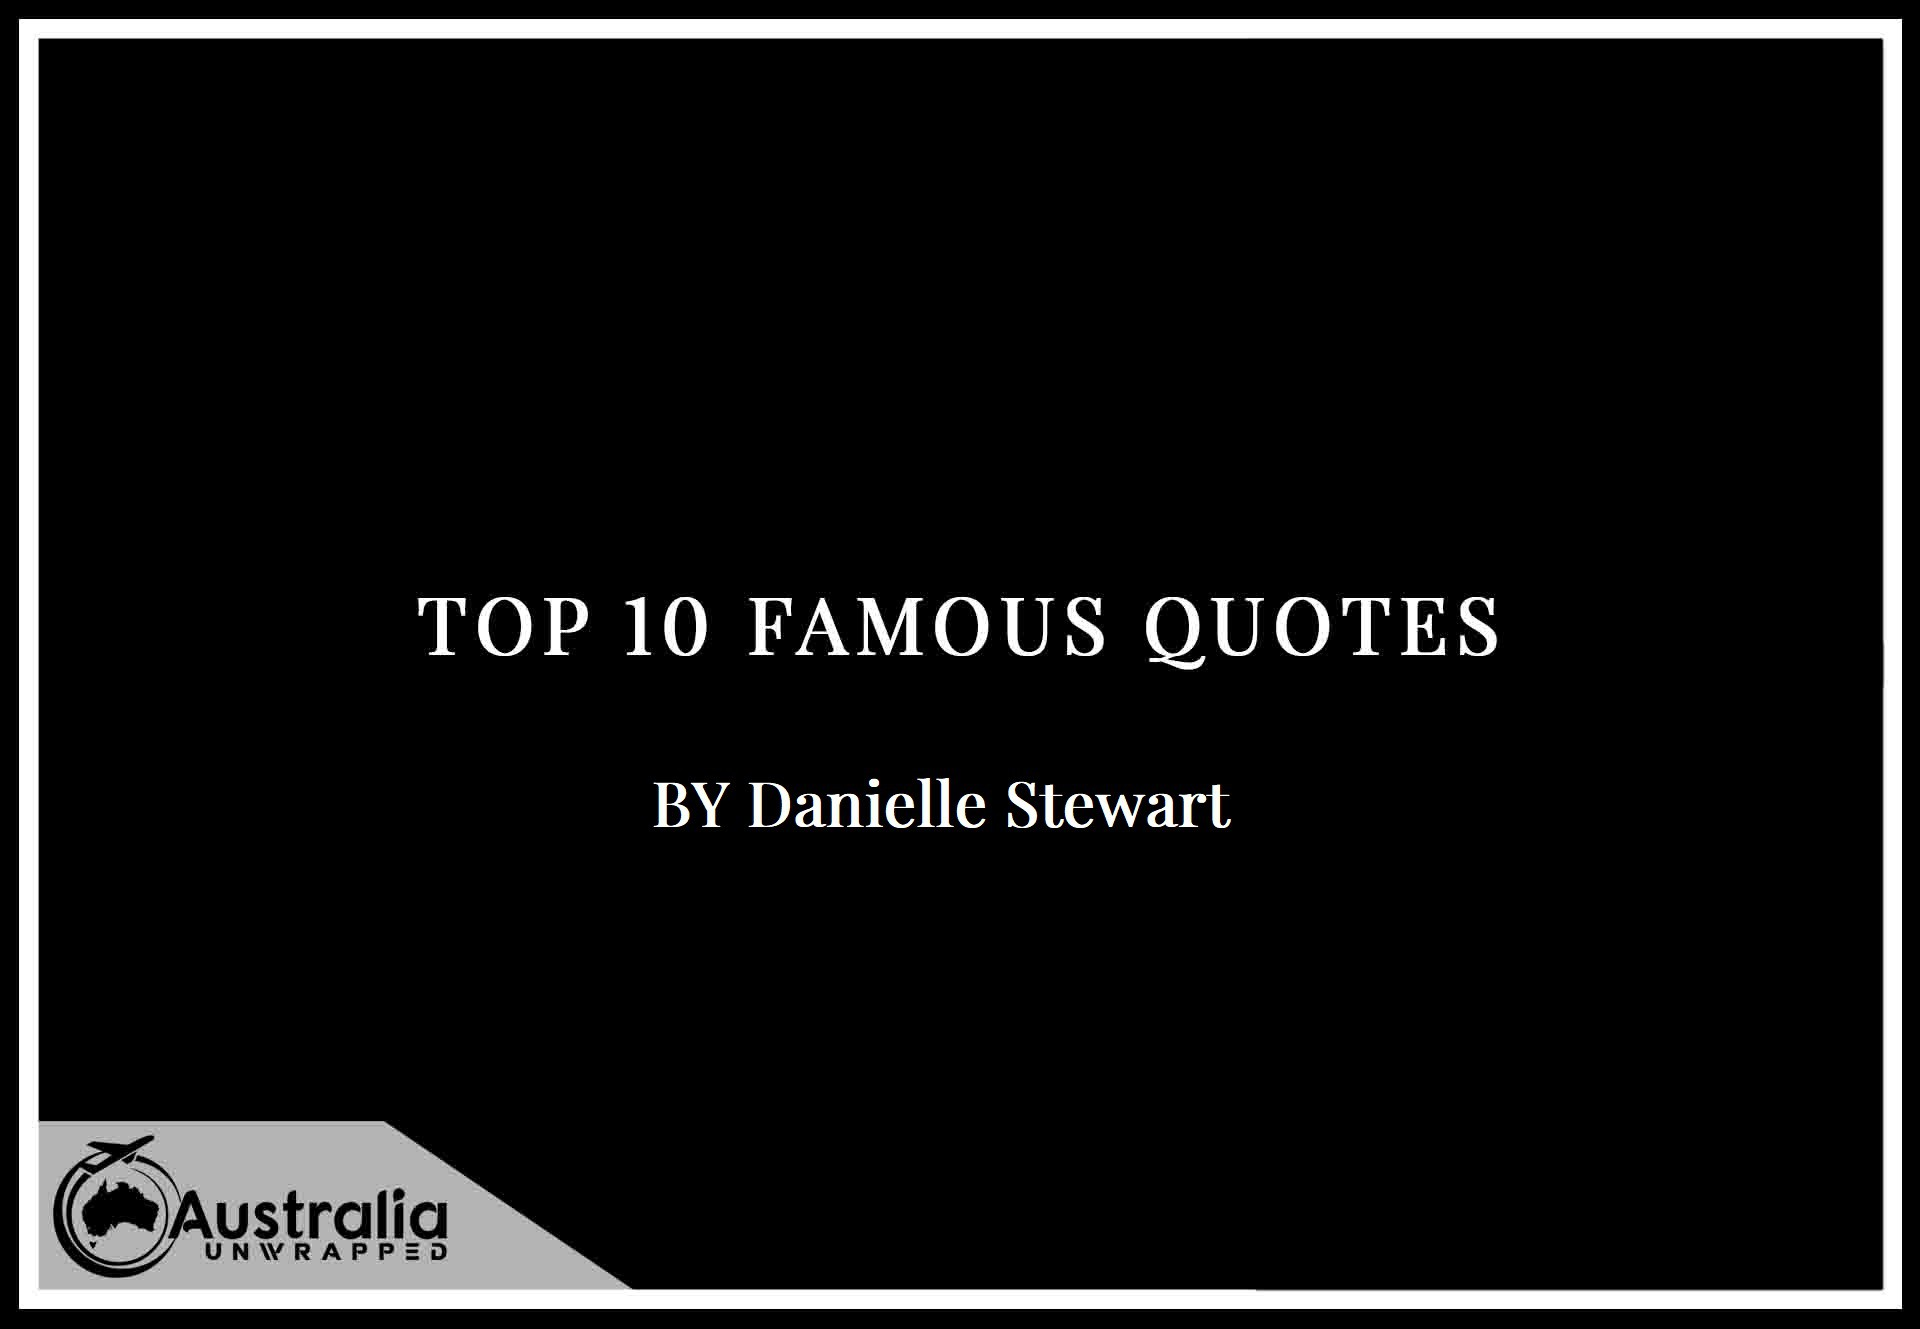 Top 10 Famous Quotes by Author Danielle Stewart